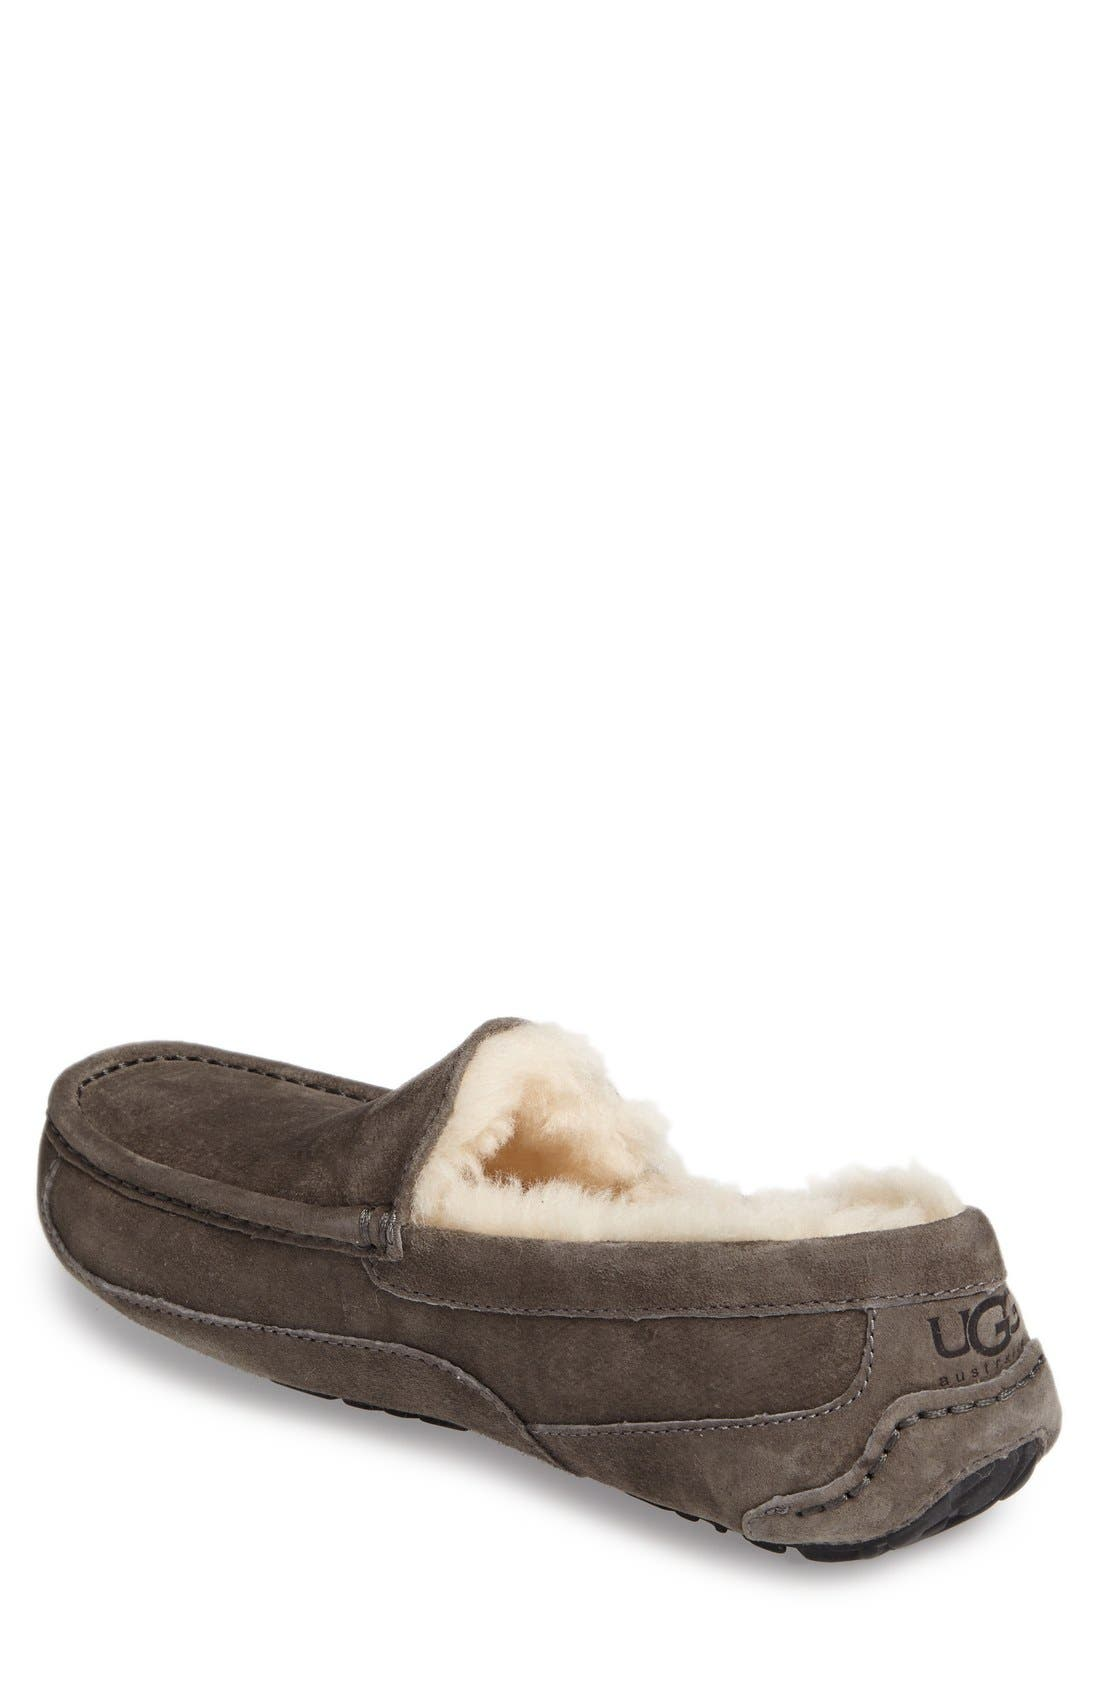 Alternate Image 2  - UGG® Ascot Suede Slipper (Men)